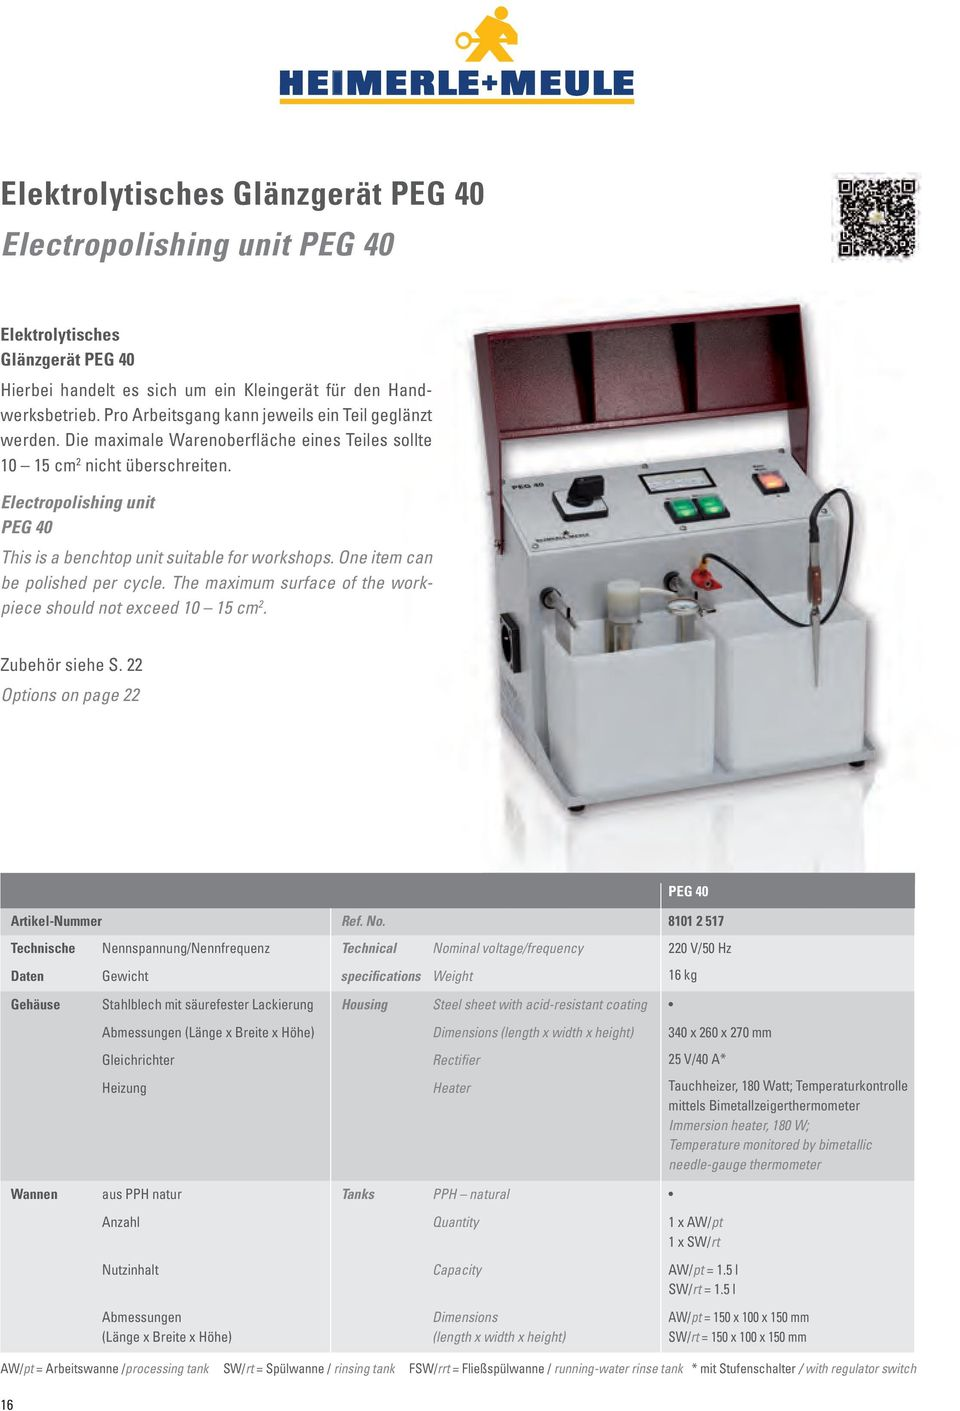 Electropolishing unit PEG 40 This is a benchtop unit suitable for workshops. One item can be polished per cycle. The maximum surface of the workpiece should not exceed 10 15 cm 2. Zubehör siehe S.